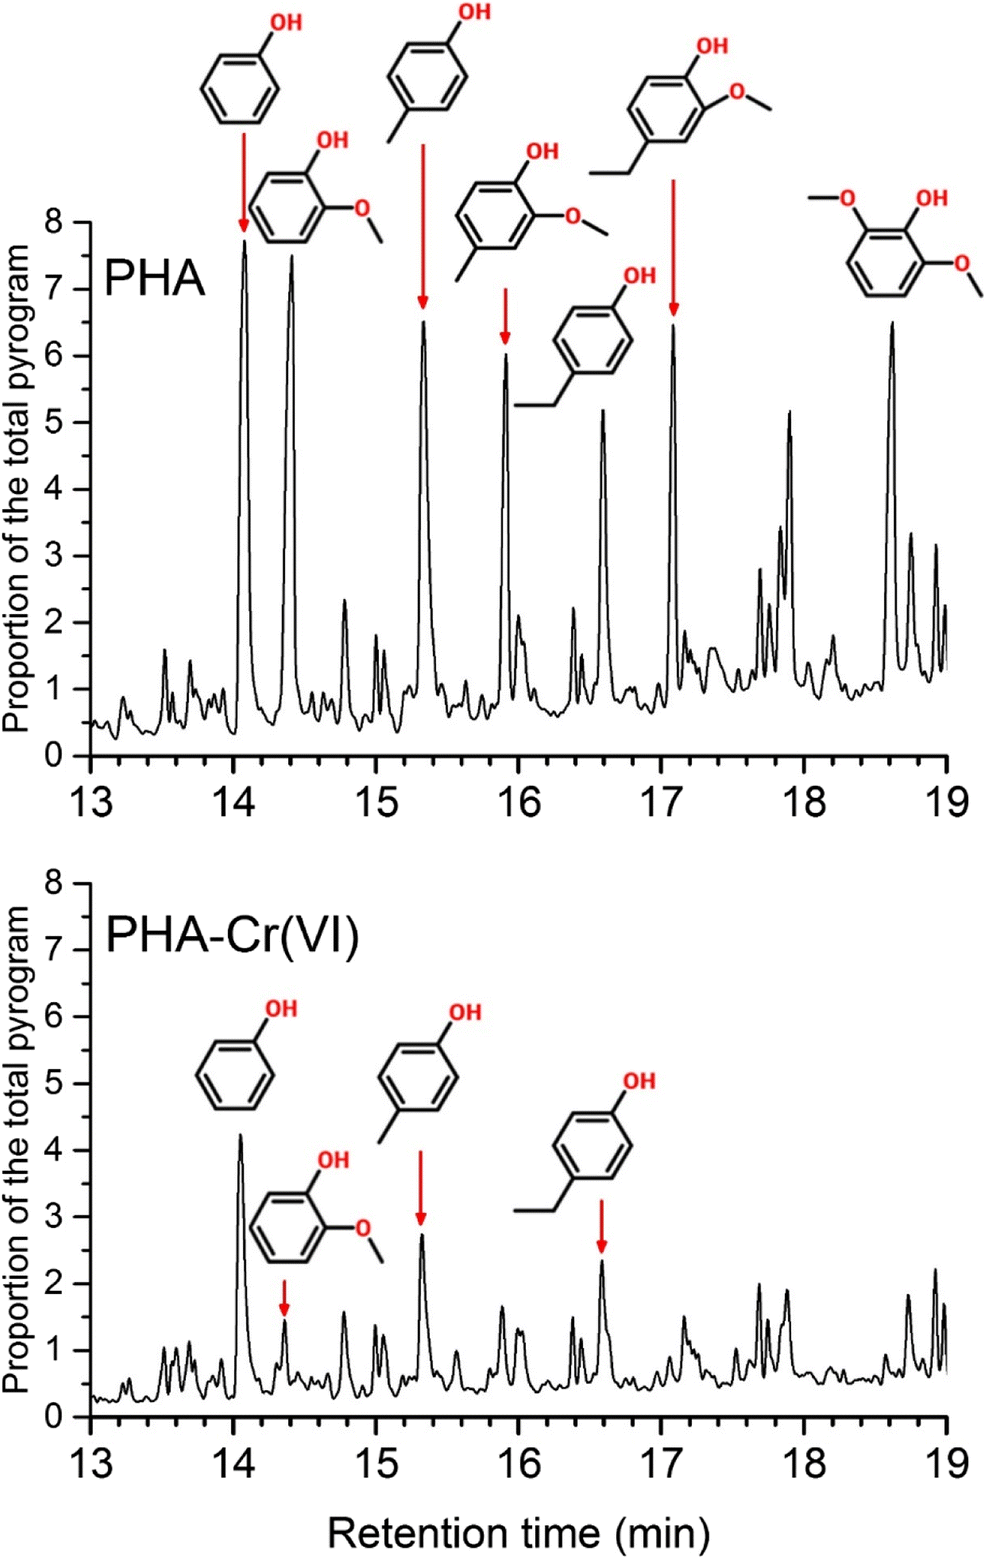 Abiotic reduction of Cr(VI) by humic acids derived from peat